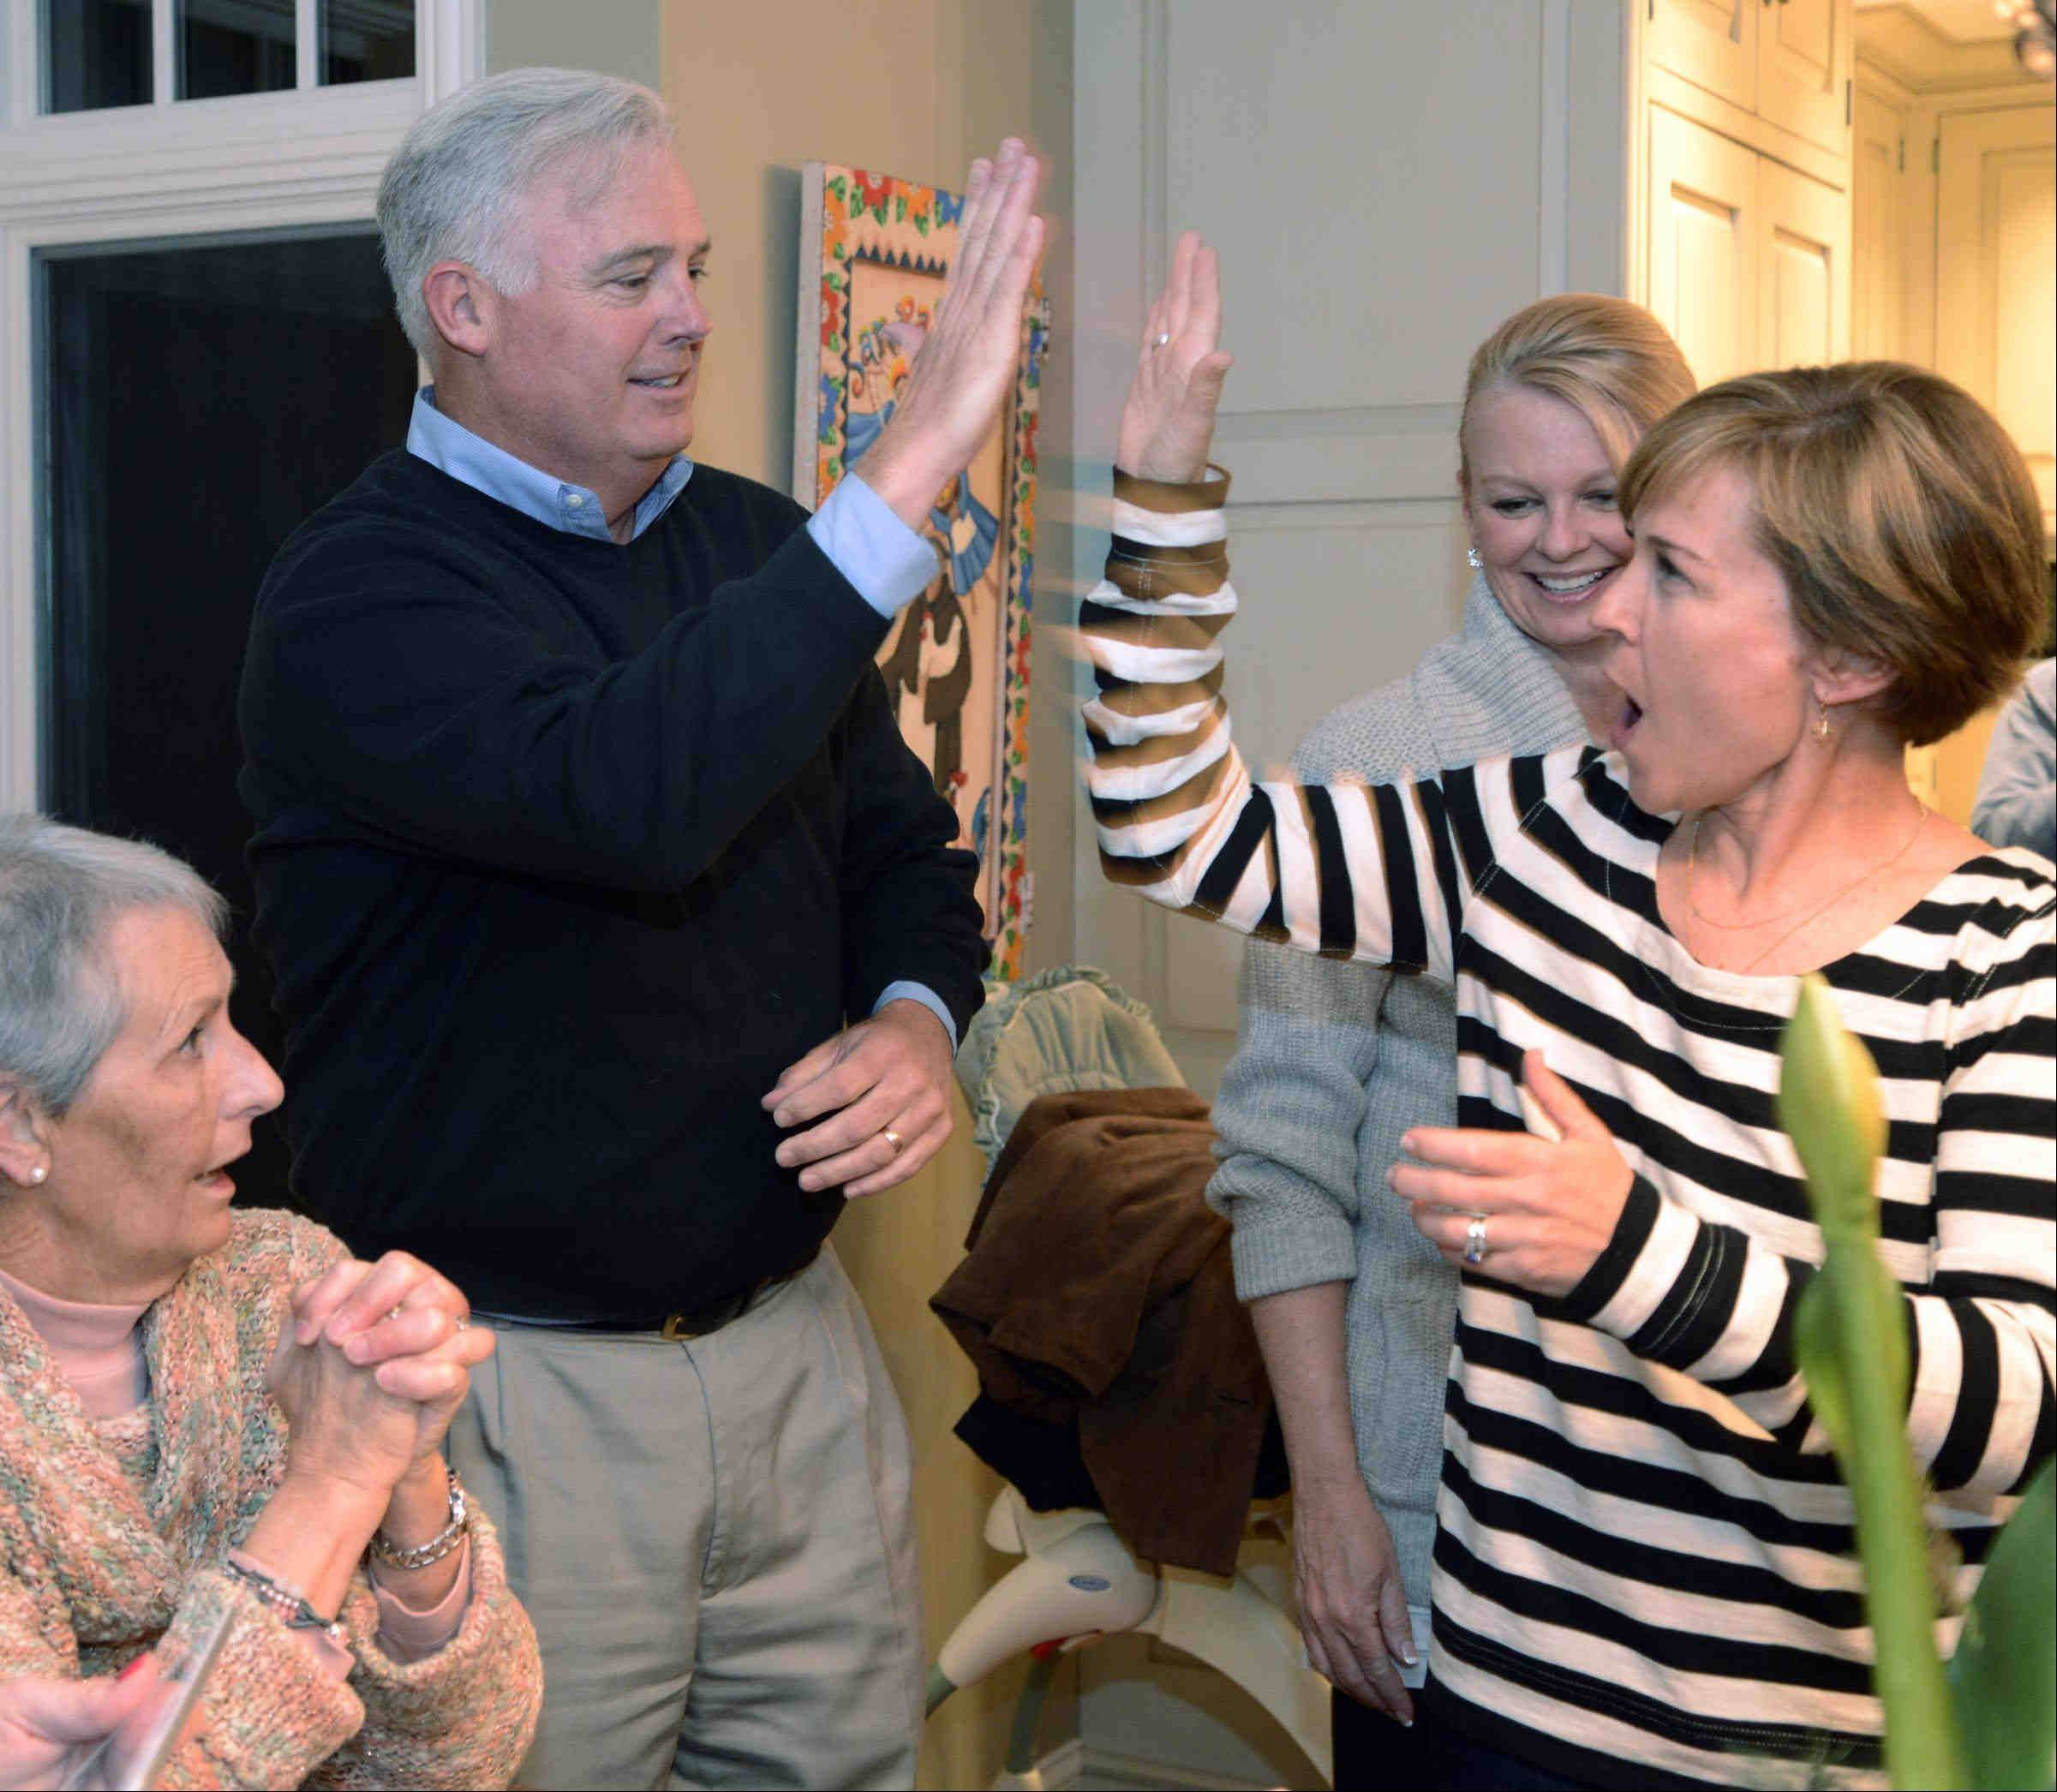 Barrington Hills village president candidate Martin McLaughlin celebrates his lead at his election night party with wife Colleen.